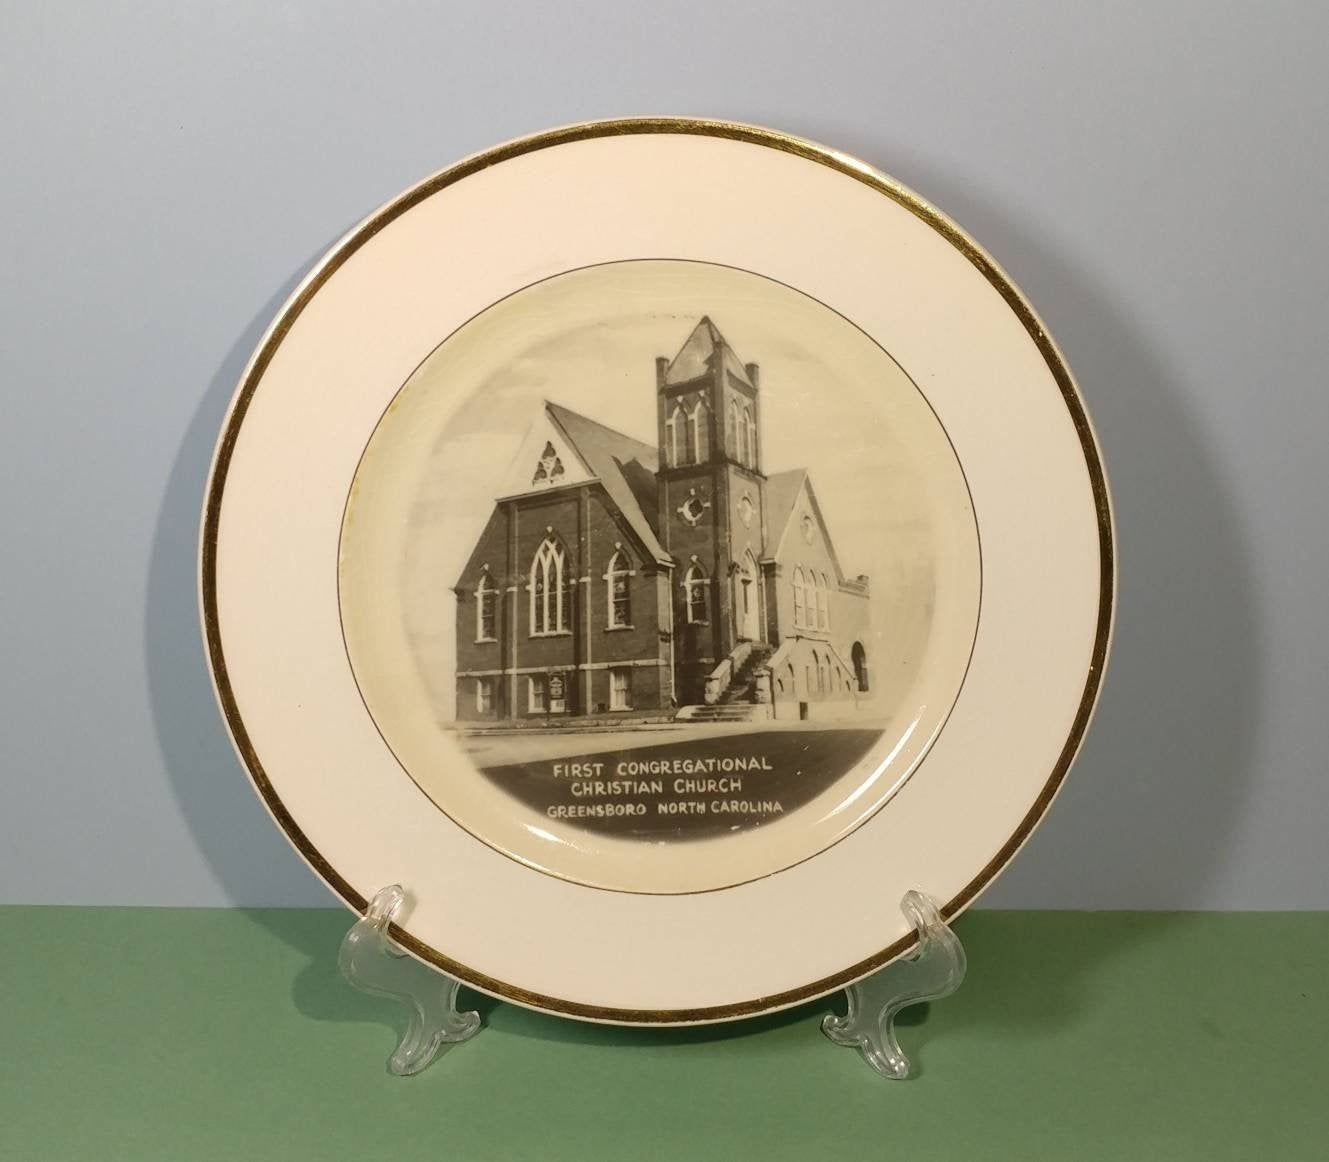 10 1/4 China Souvenir Plate of First Congregational Christian Church Greensboro North Carolina by Steubenville Pottery Commemorative Dish #churchitems